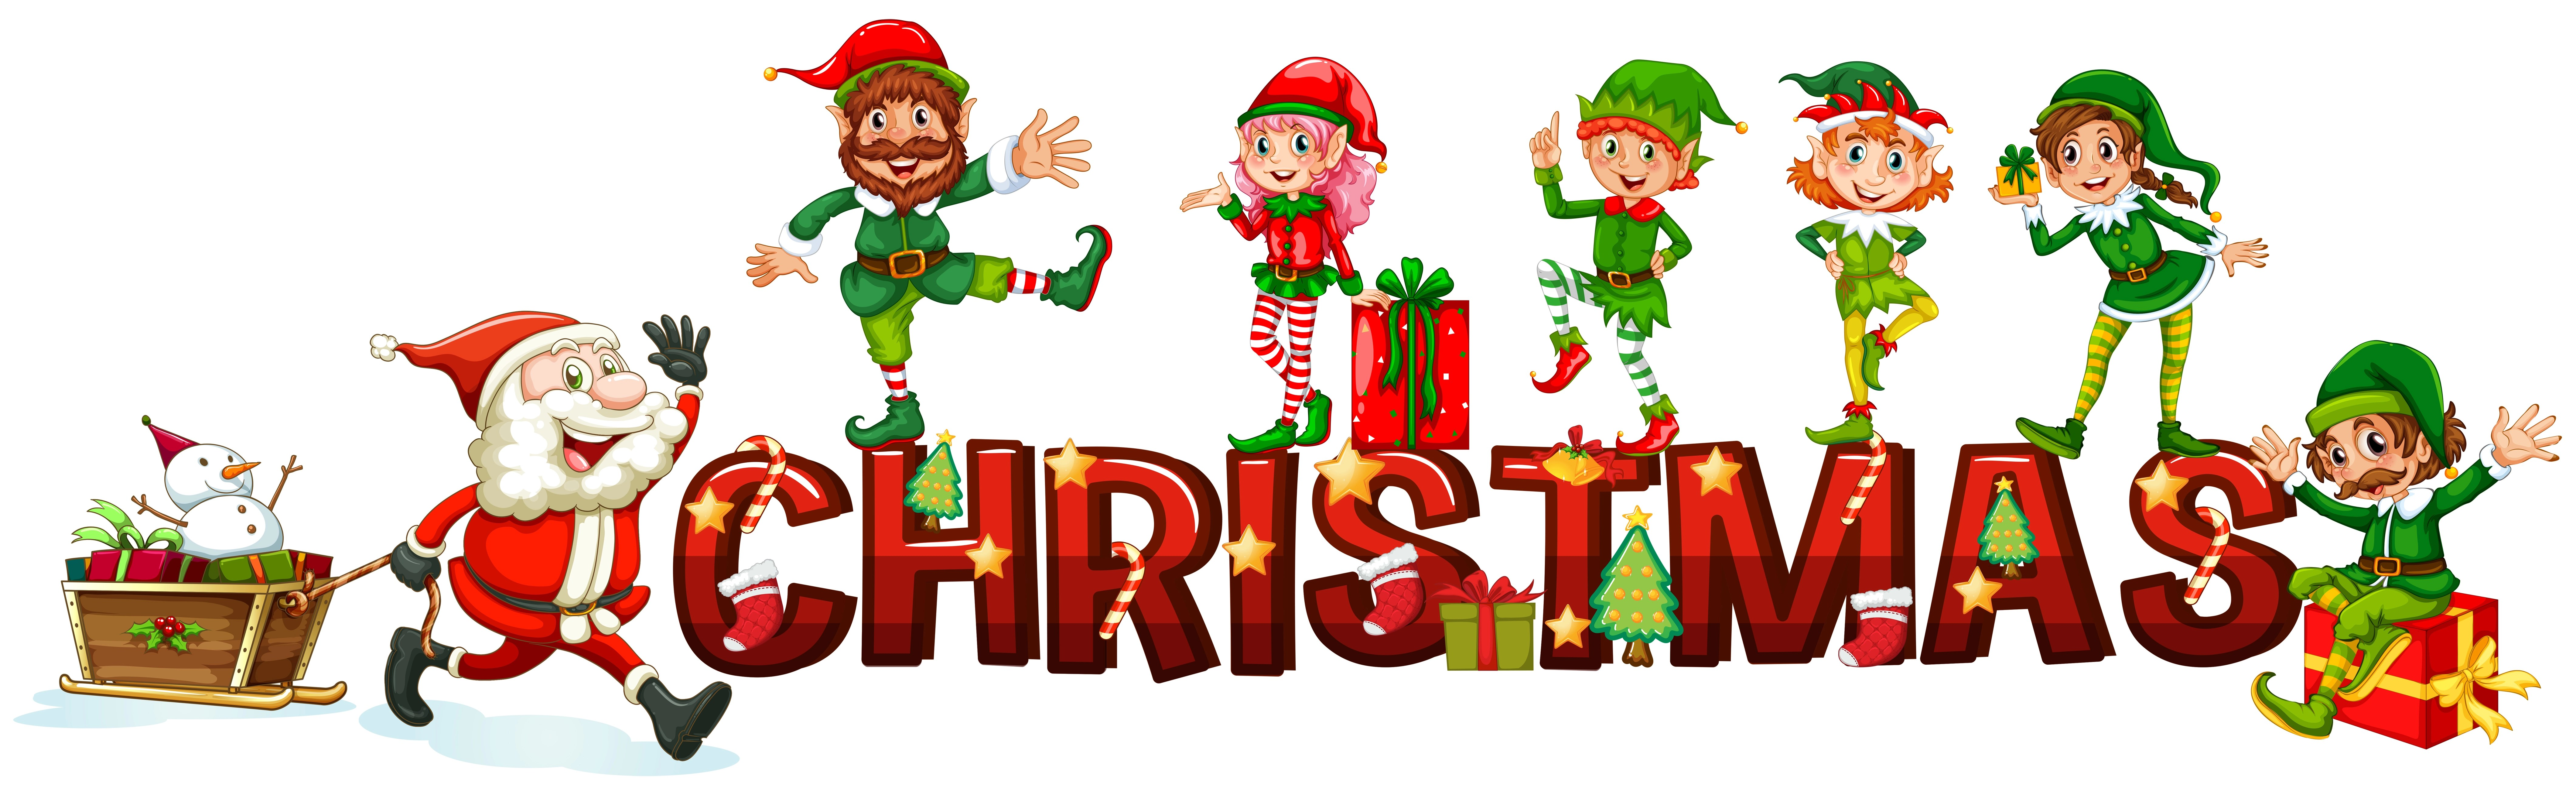 Christmas Poster With Santa And Elves